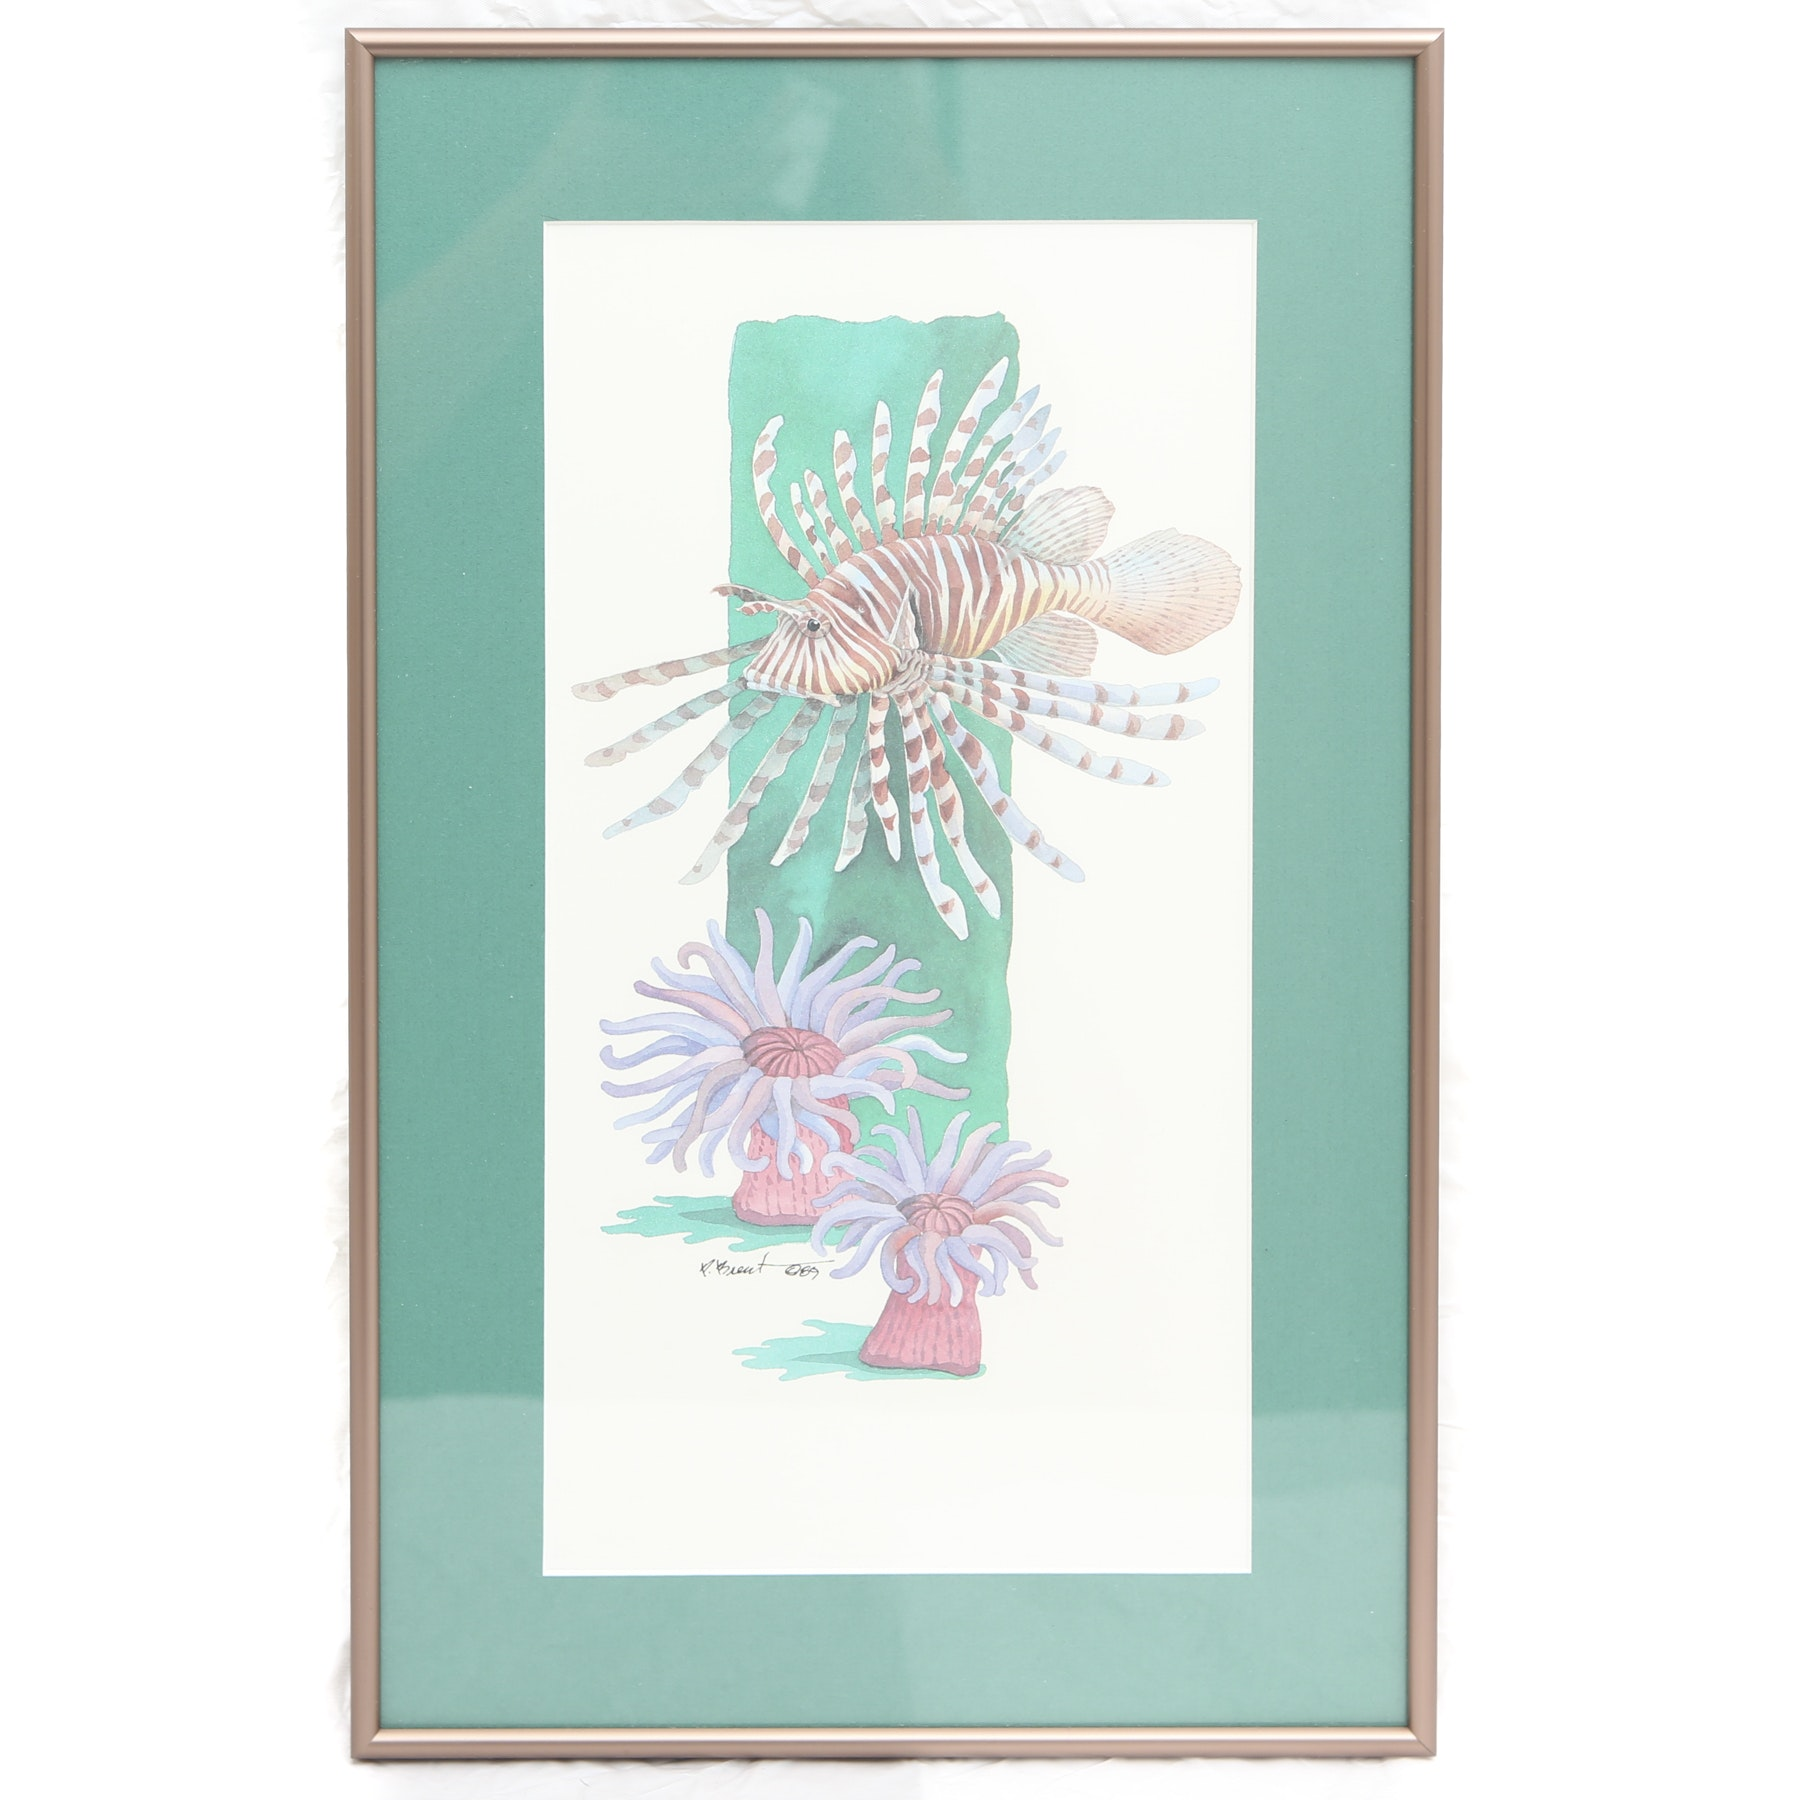 Signed Framed Offset Lithograph of Marine Life